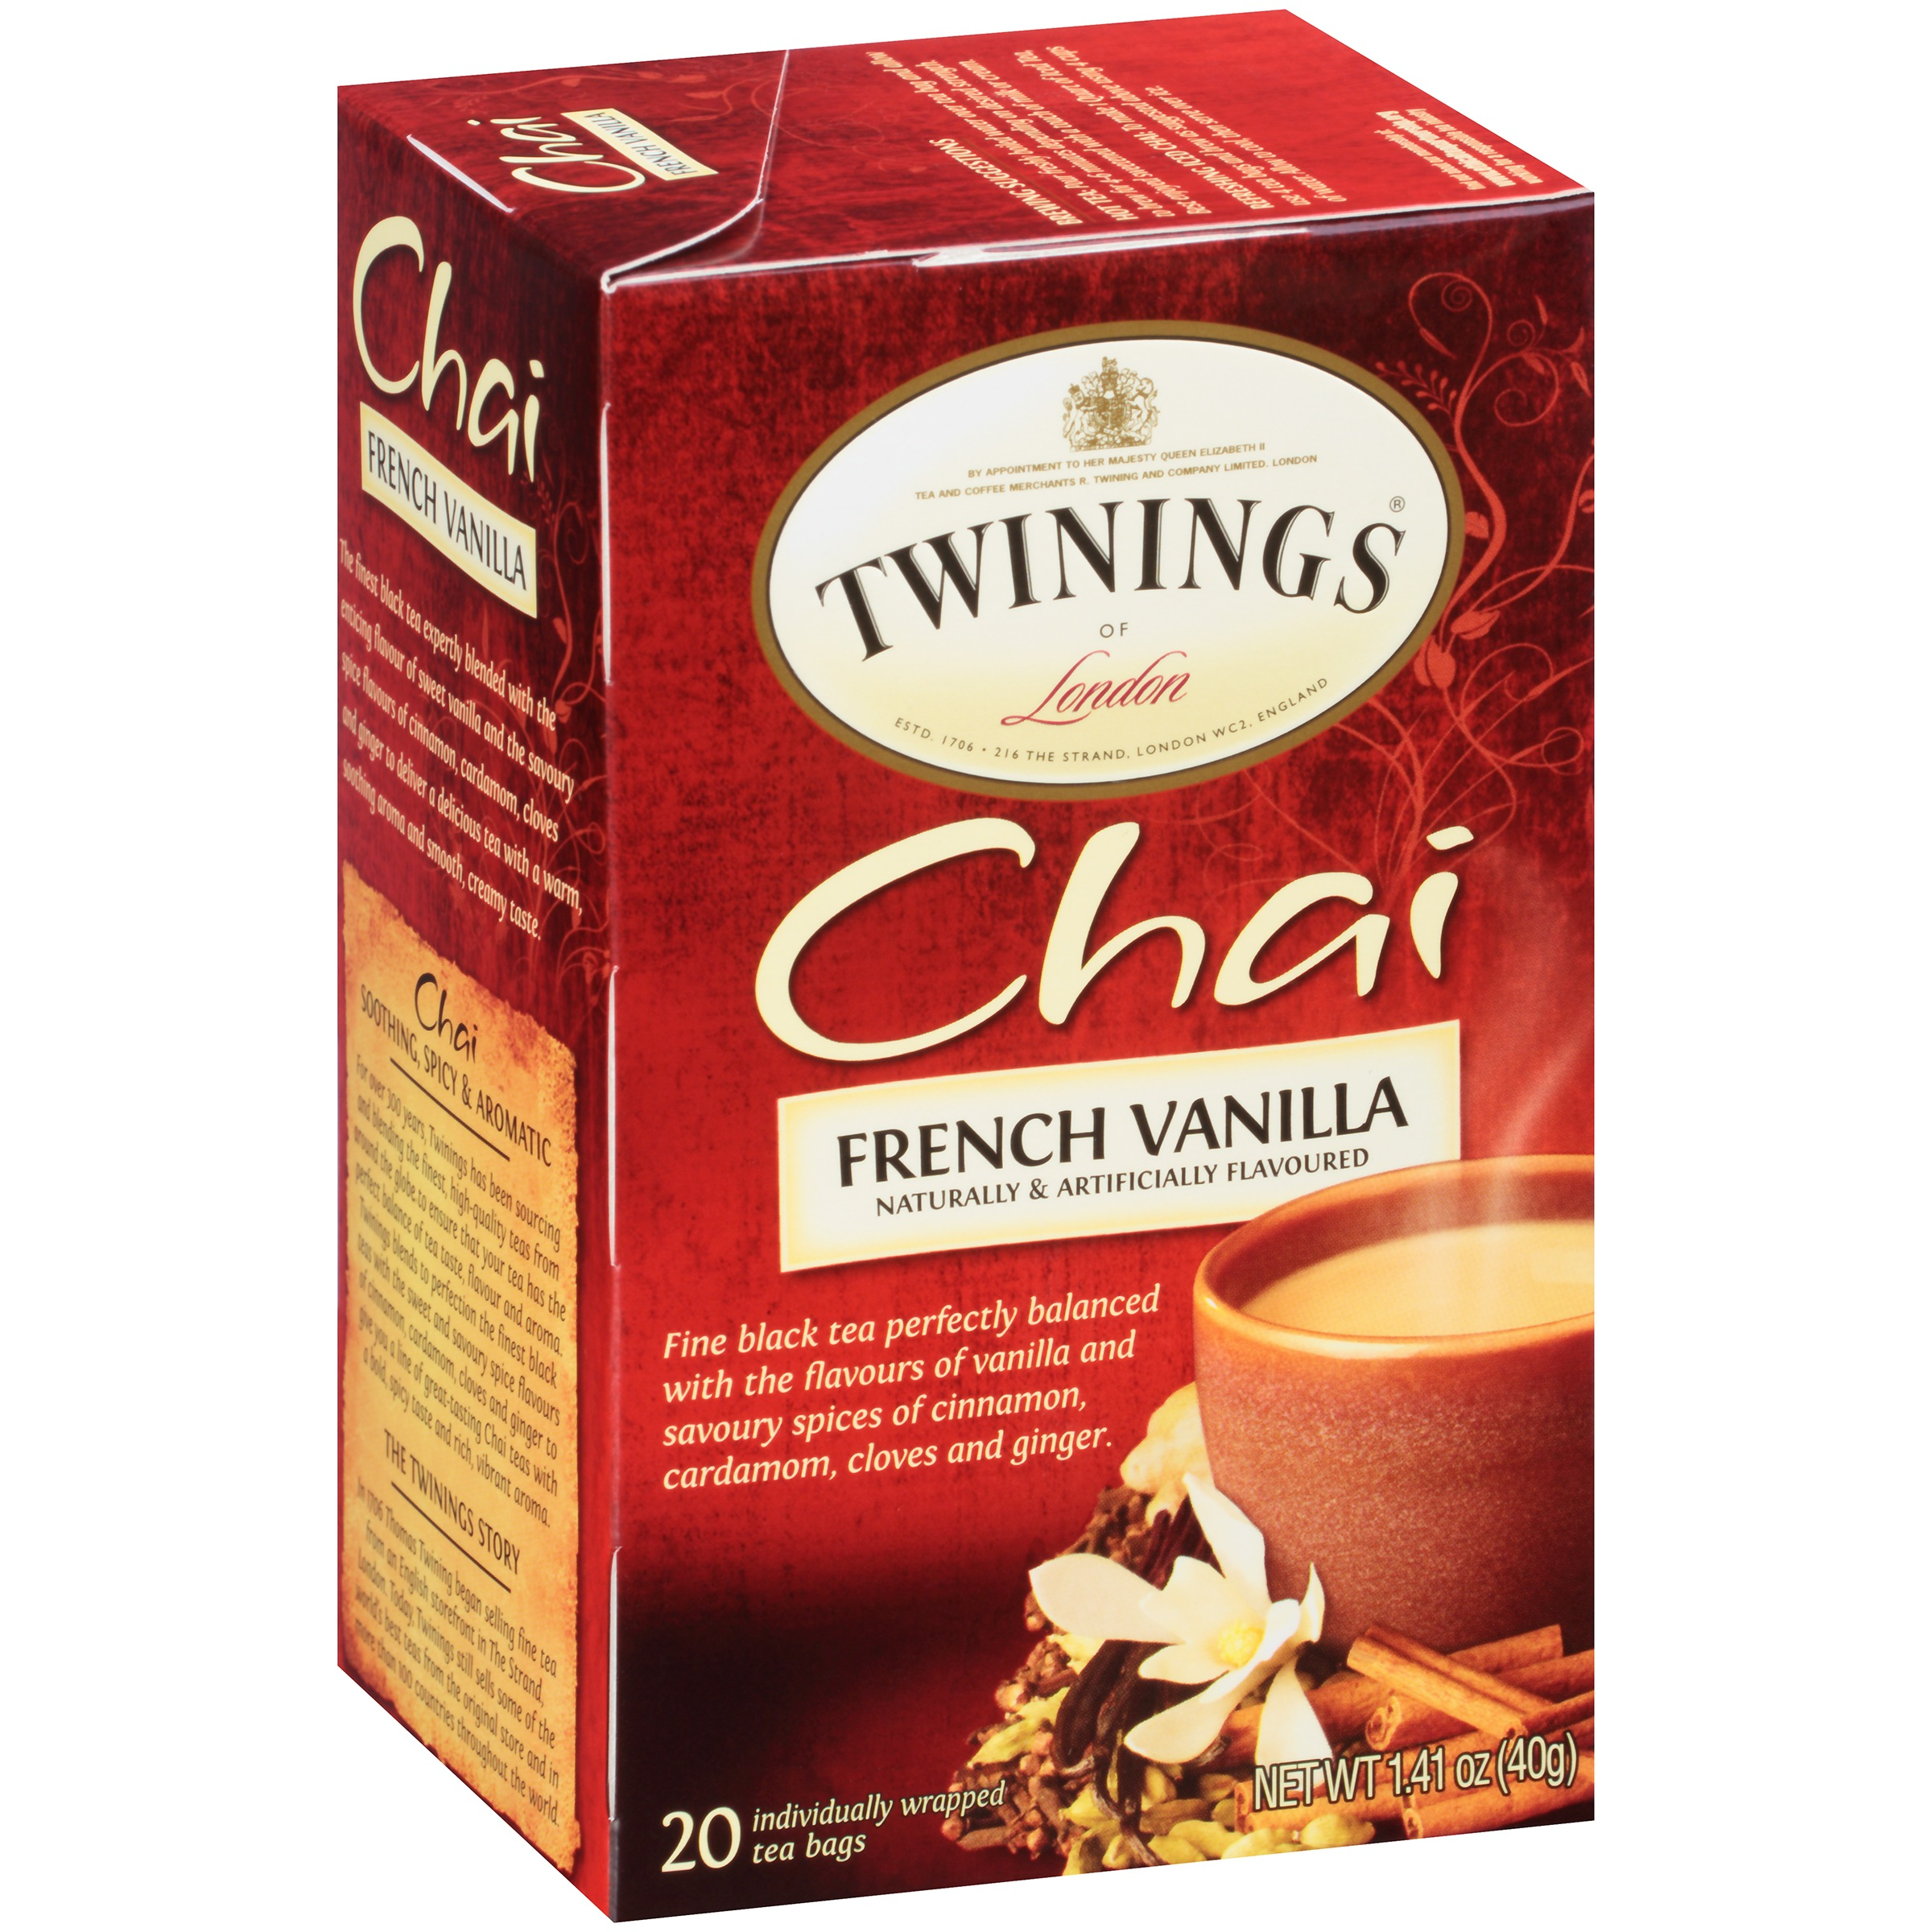 Twinings of London® French Vanilla Chai 20 ct Tea Bags 1.41 oz. Box